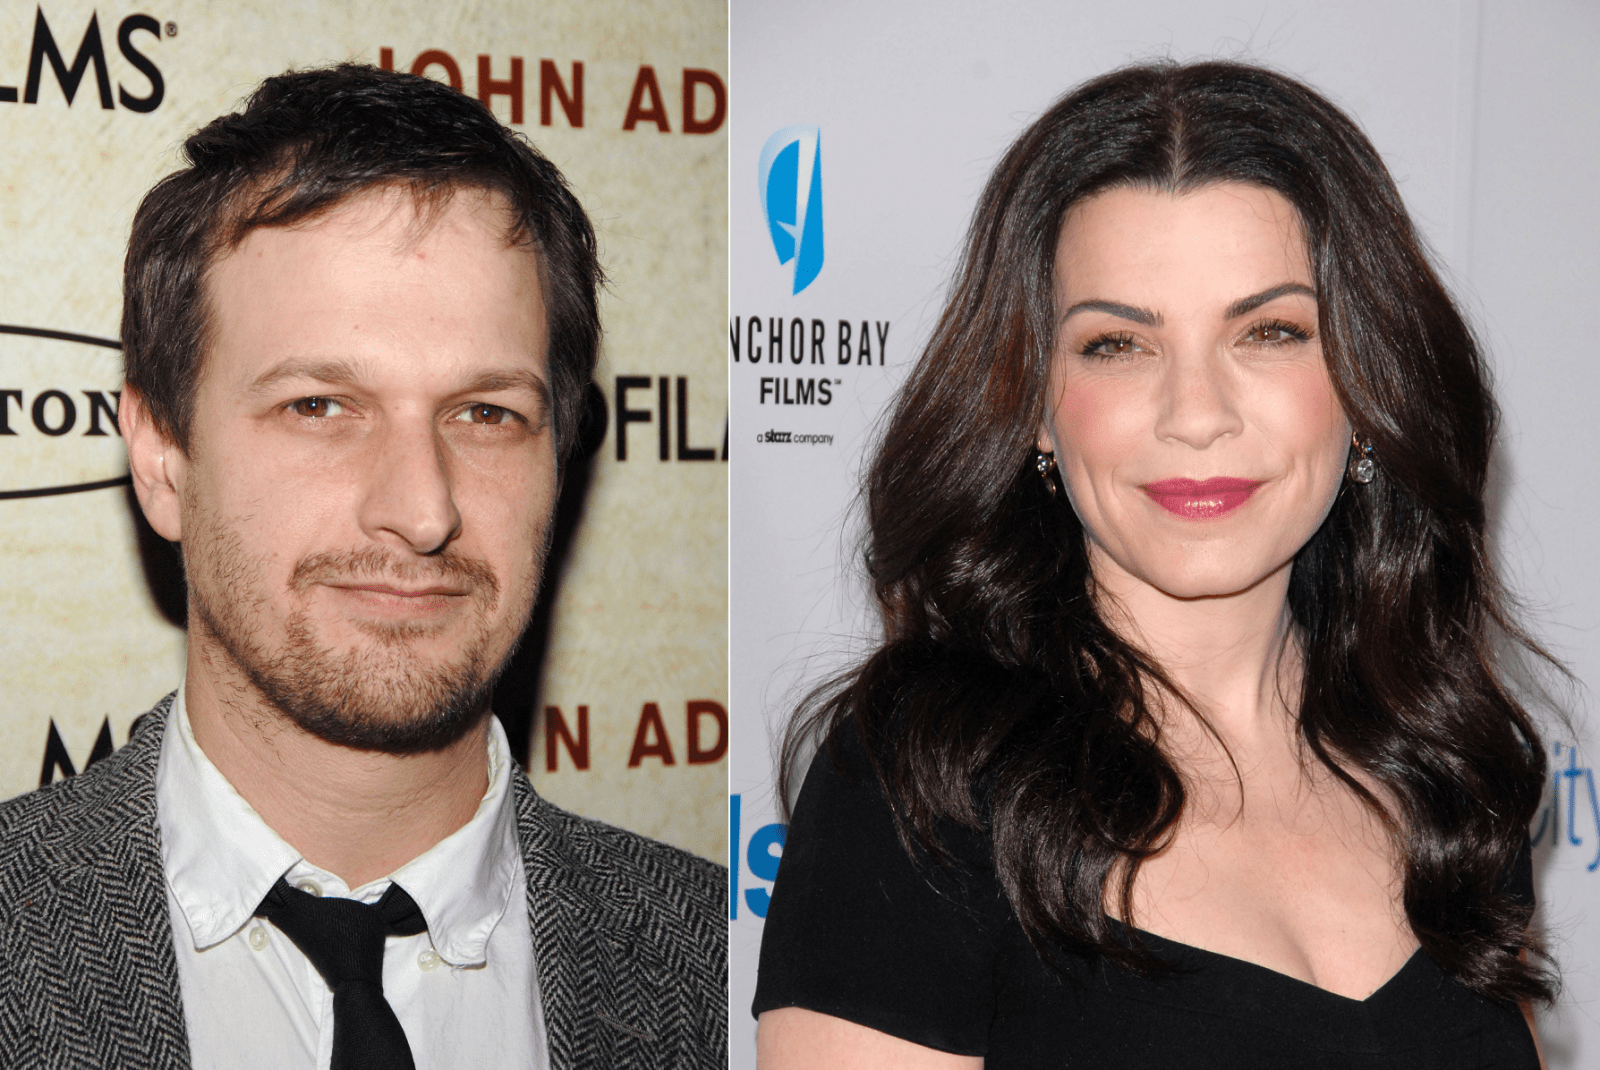 STOCK PHOTO OF JOSH CHARLES BY EVERETT COLLECTION; JULIANNA MARGULIES BY S_BUCKLEY.